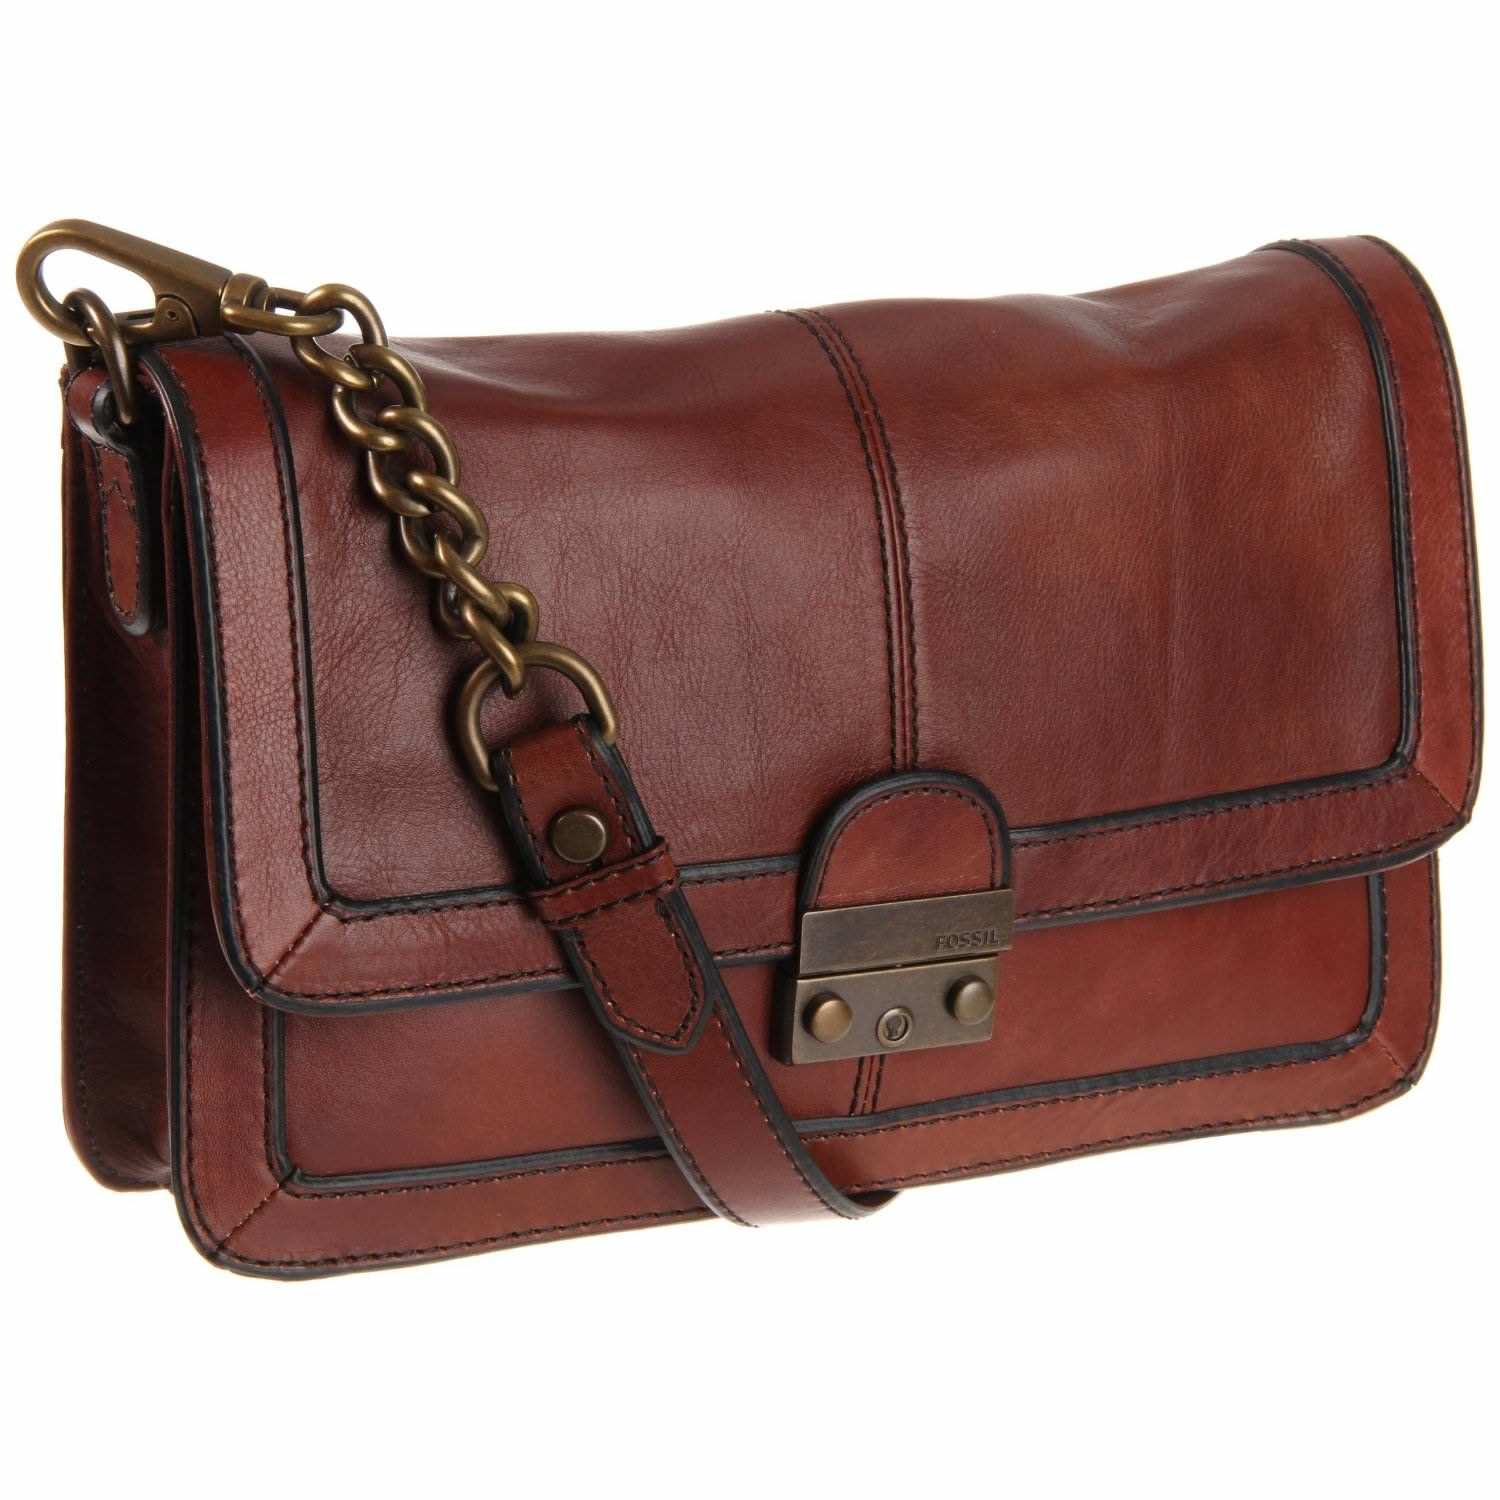 Fossil Handbags Outlet Photo